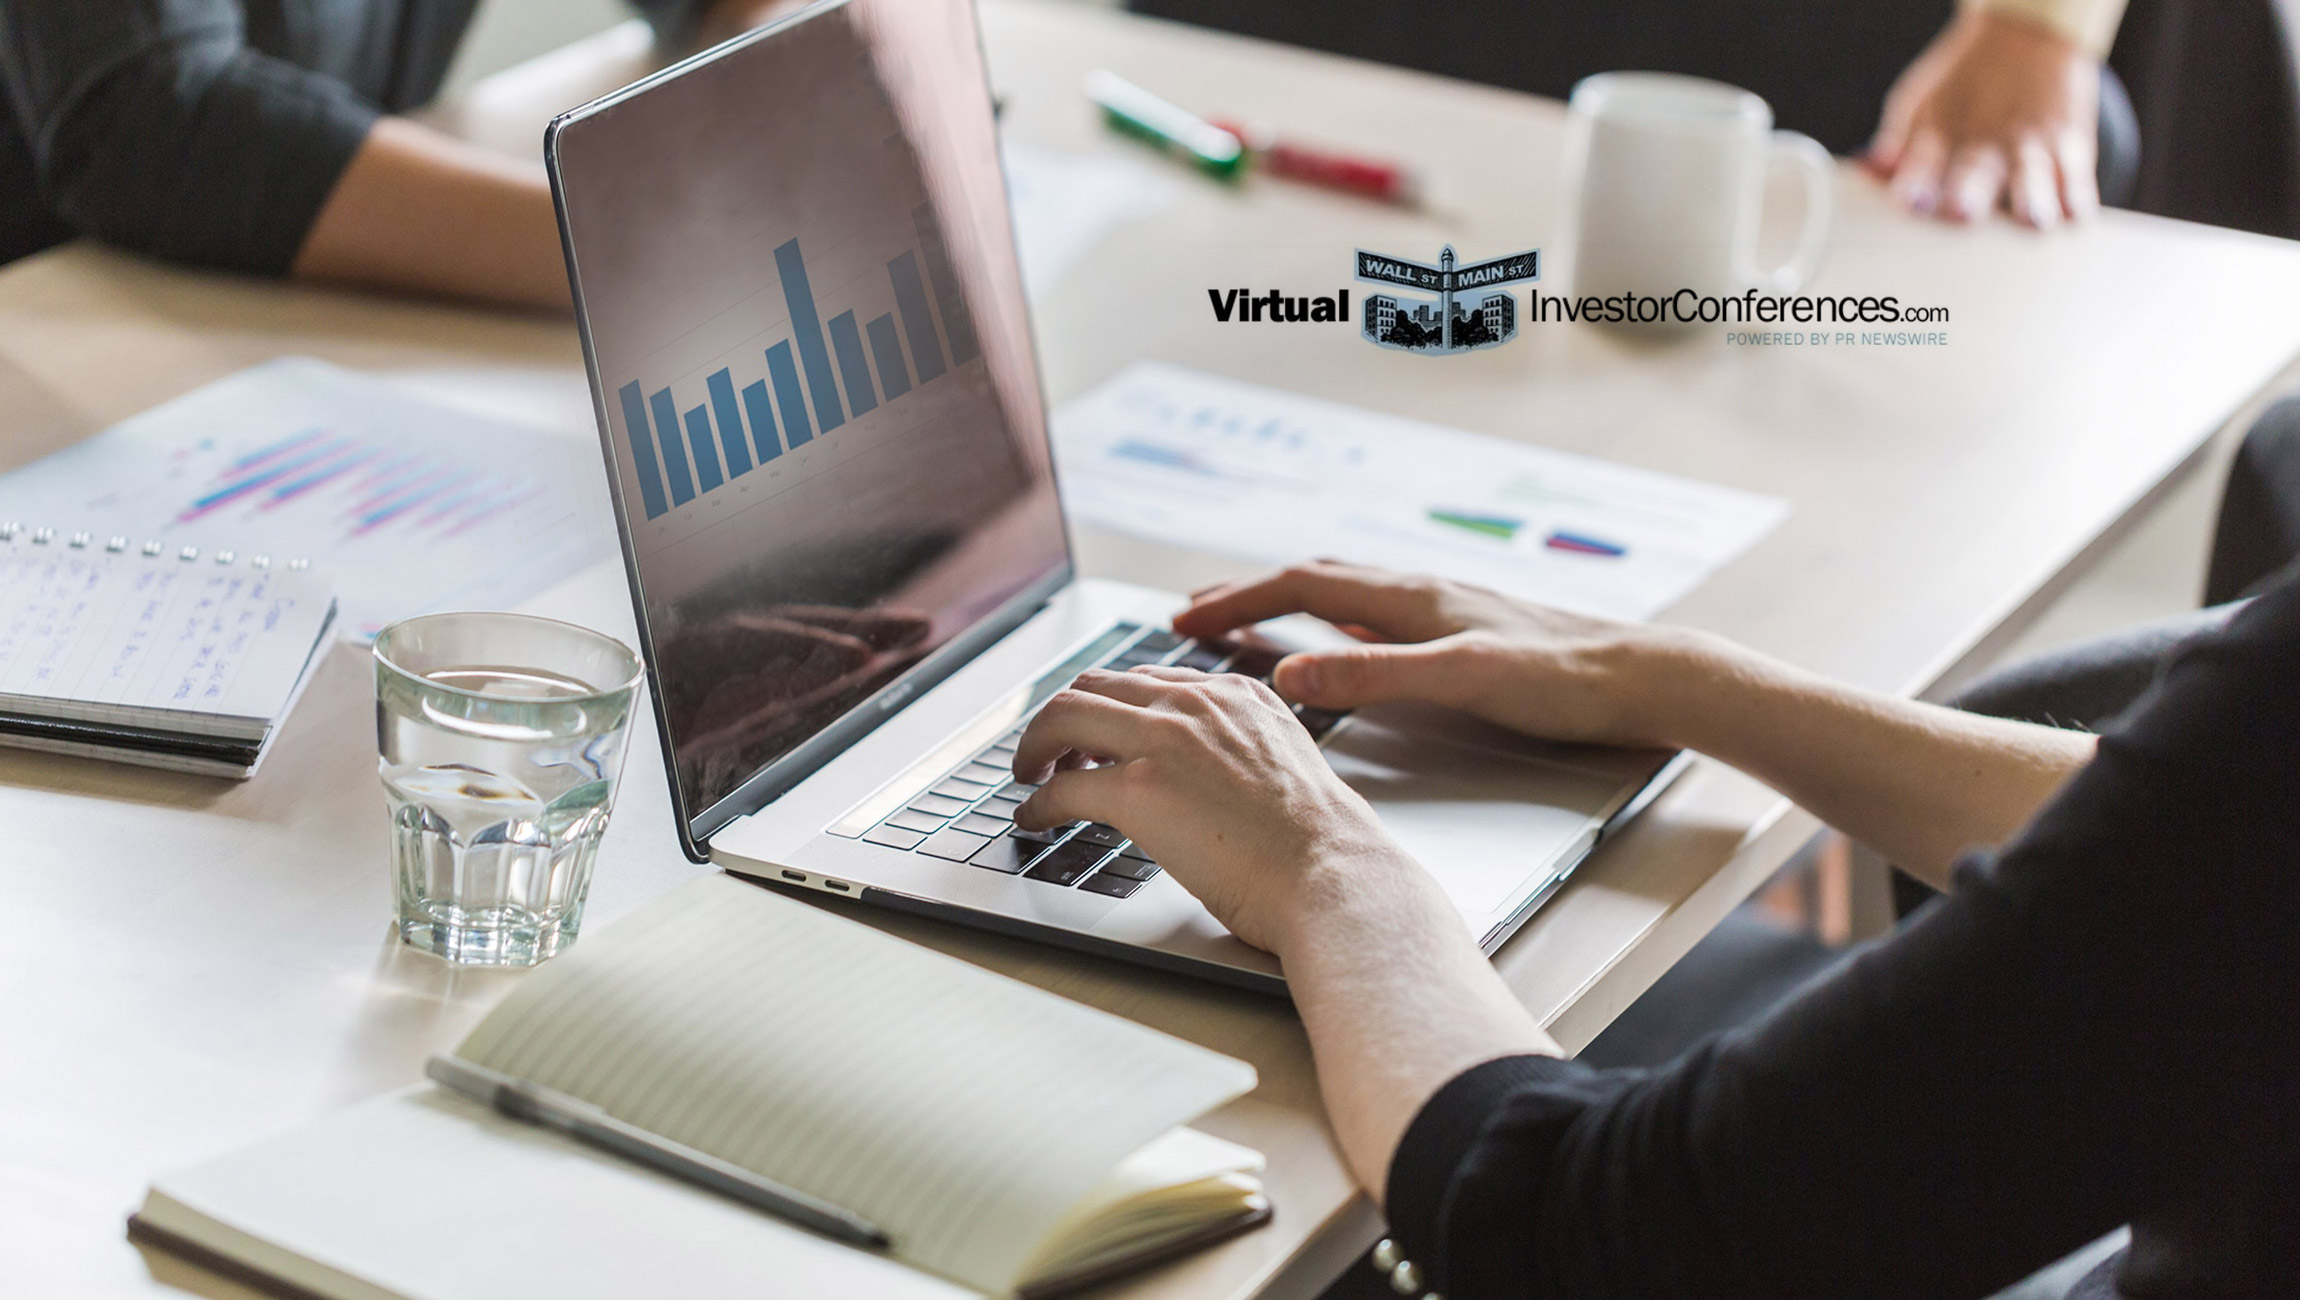 Engagement Labs' Ed Keller to Webcast Live at Virtual Investor Conferences Series on July 12